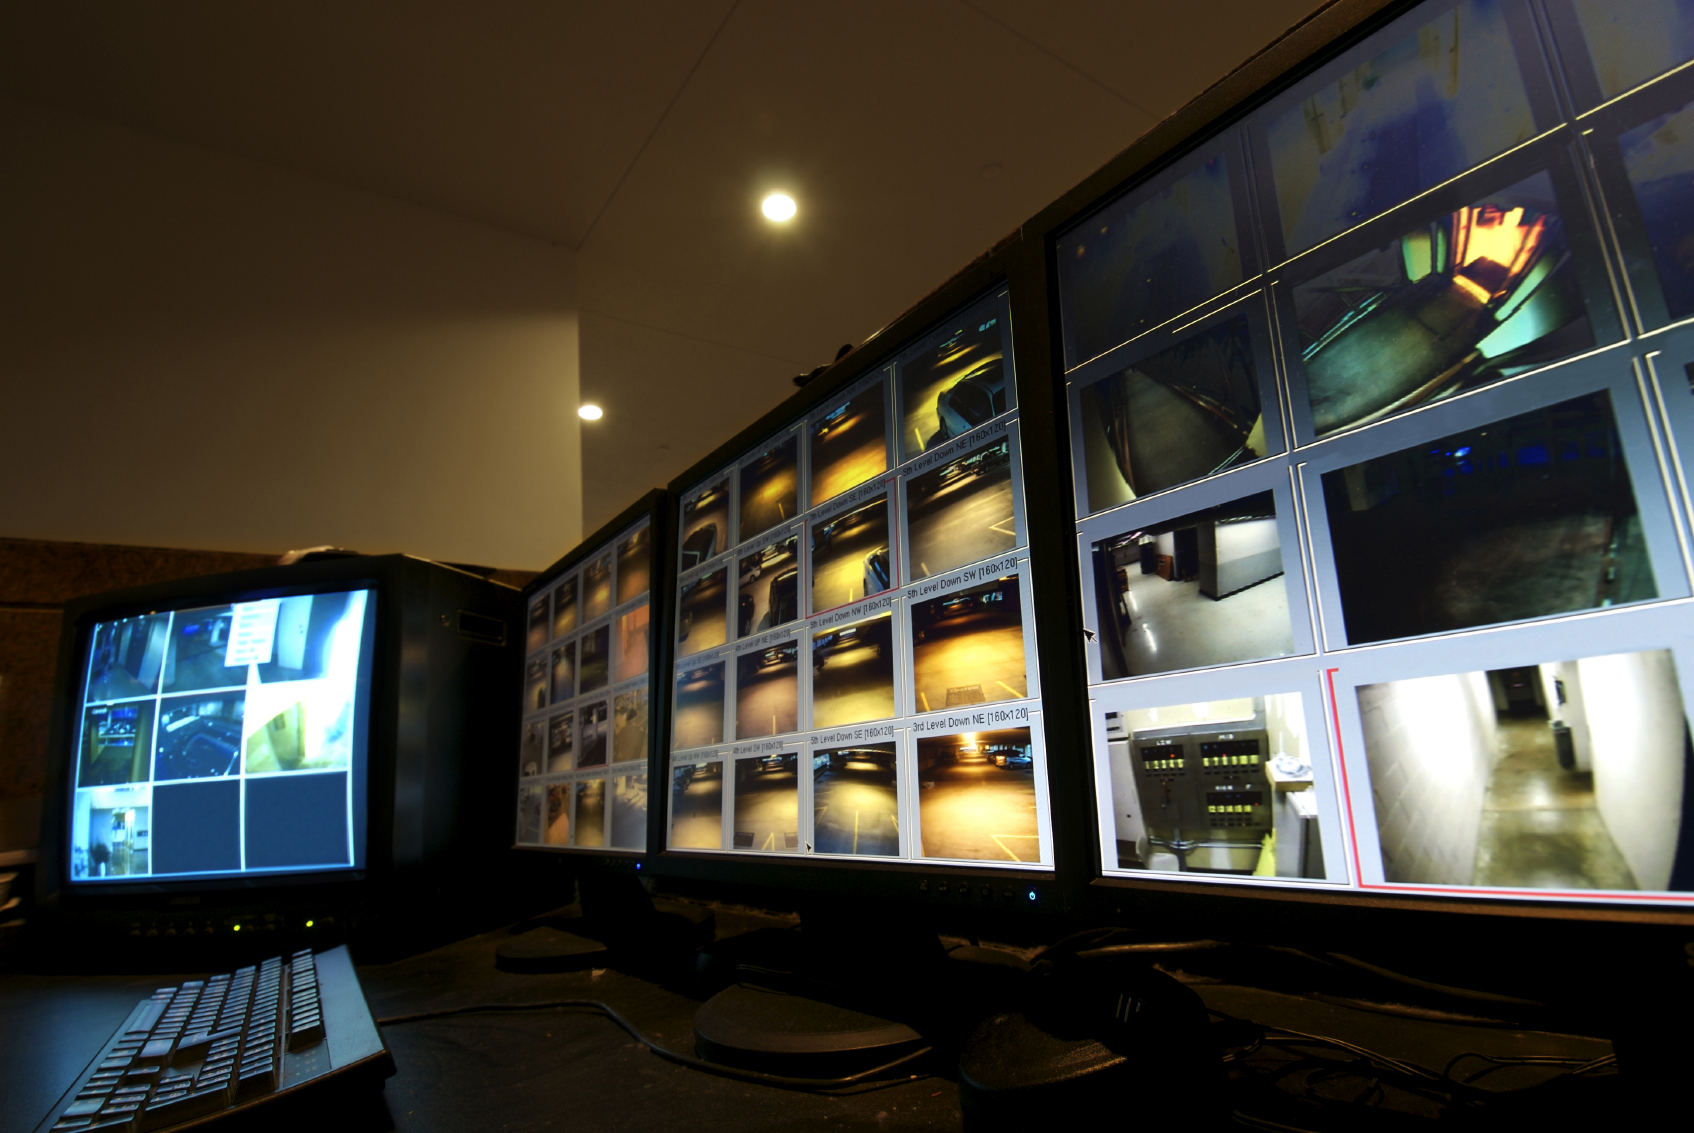 The lucrative future of CCTV: remote biometrics and behavioral suspect detection